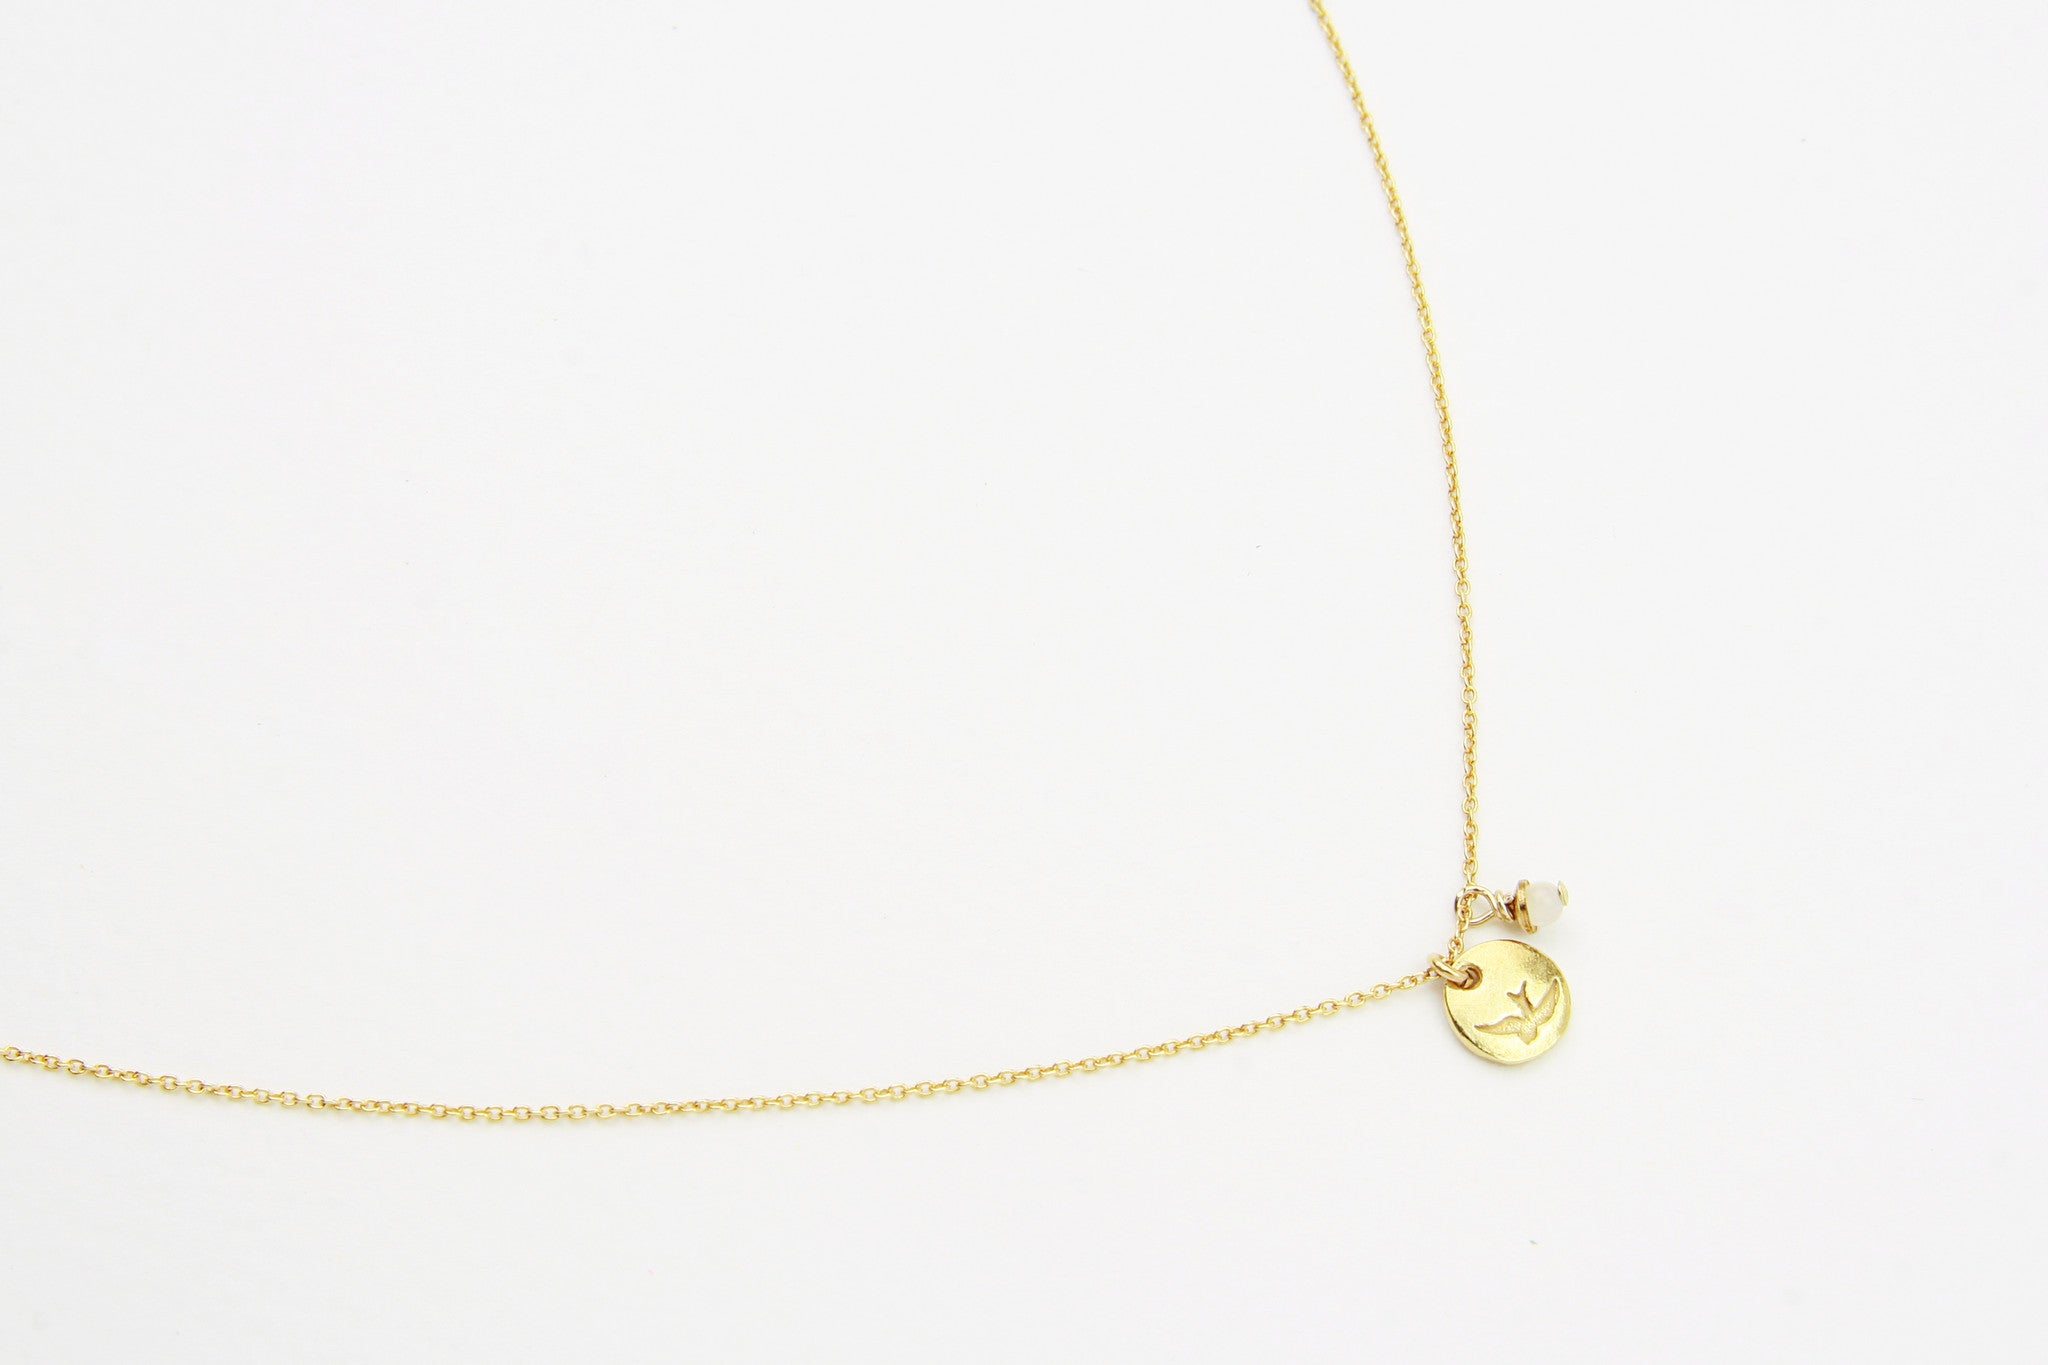 ....Kette BIRD TOKEN 925 Silber vergoldet..Necklace BIRD TOKEN 925 Sterling Silver gold plated....